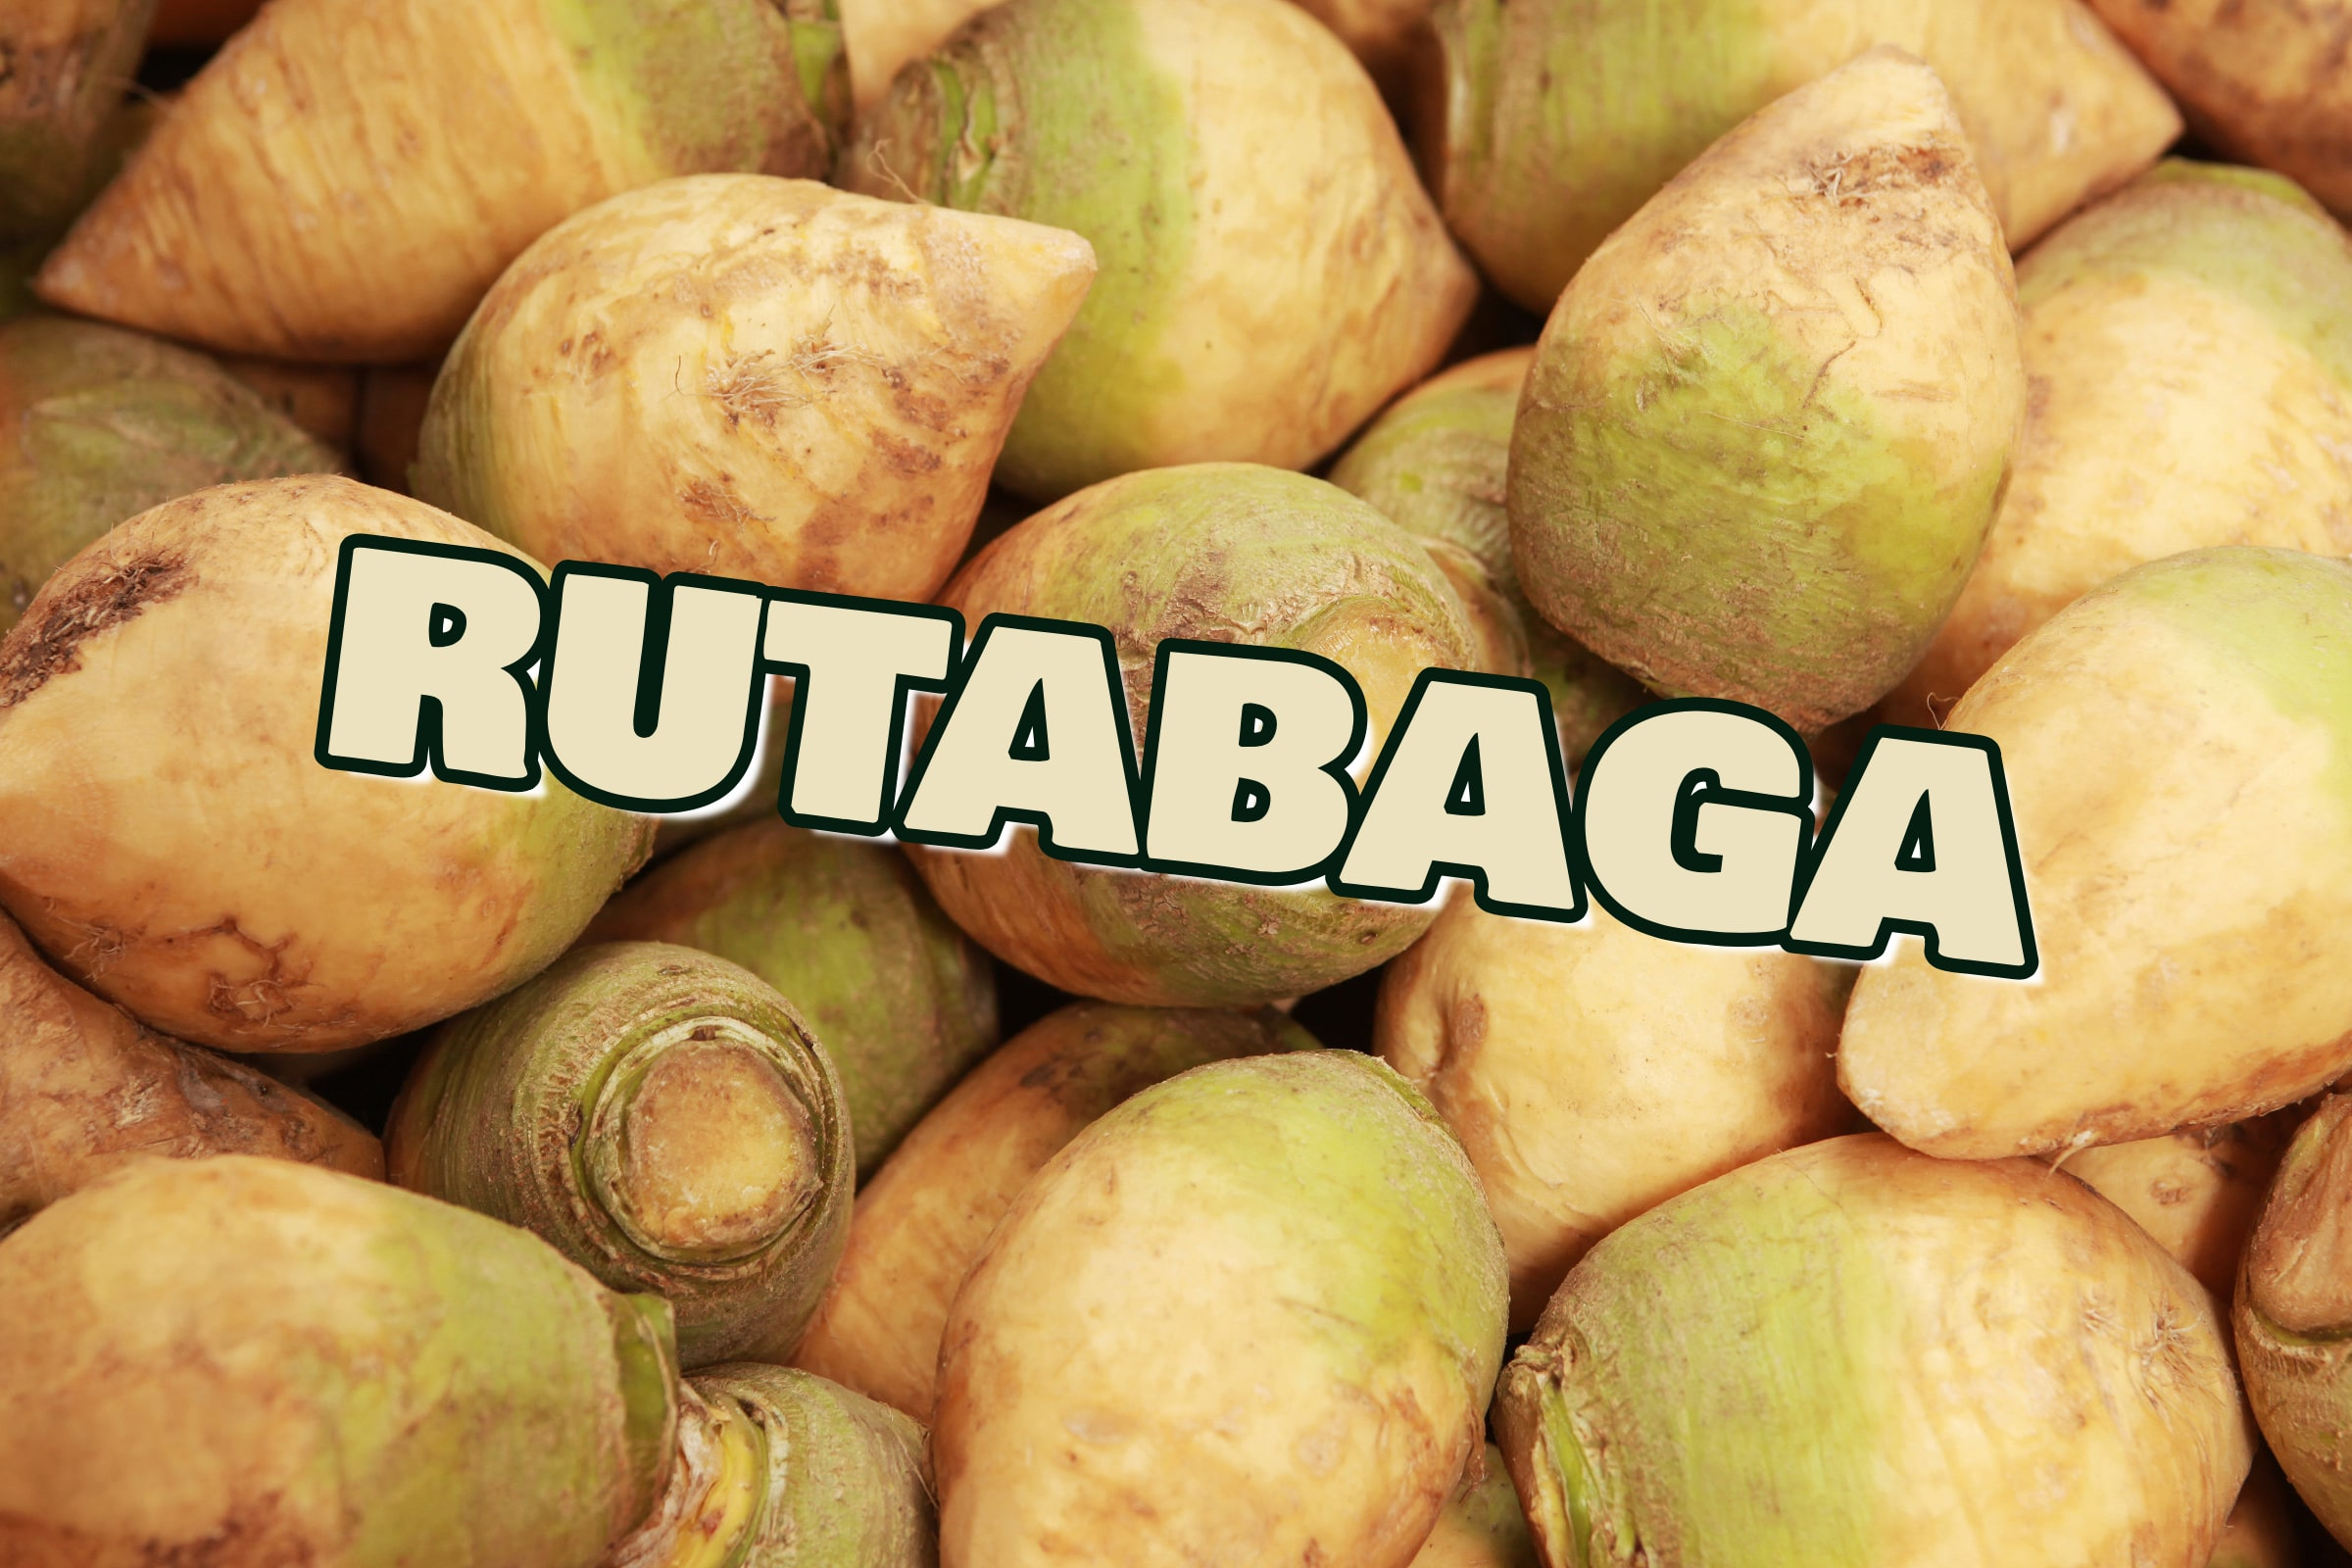 What Is The Rutabaga Plant?